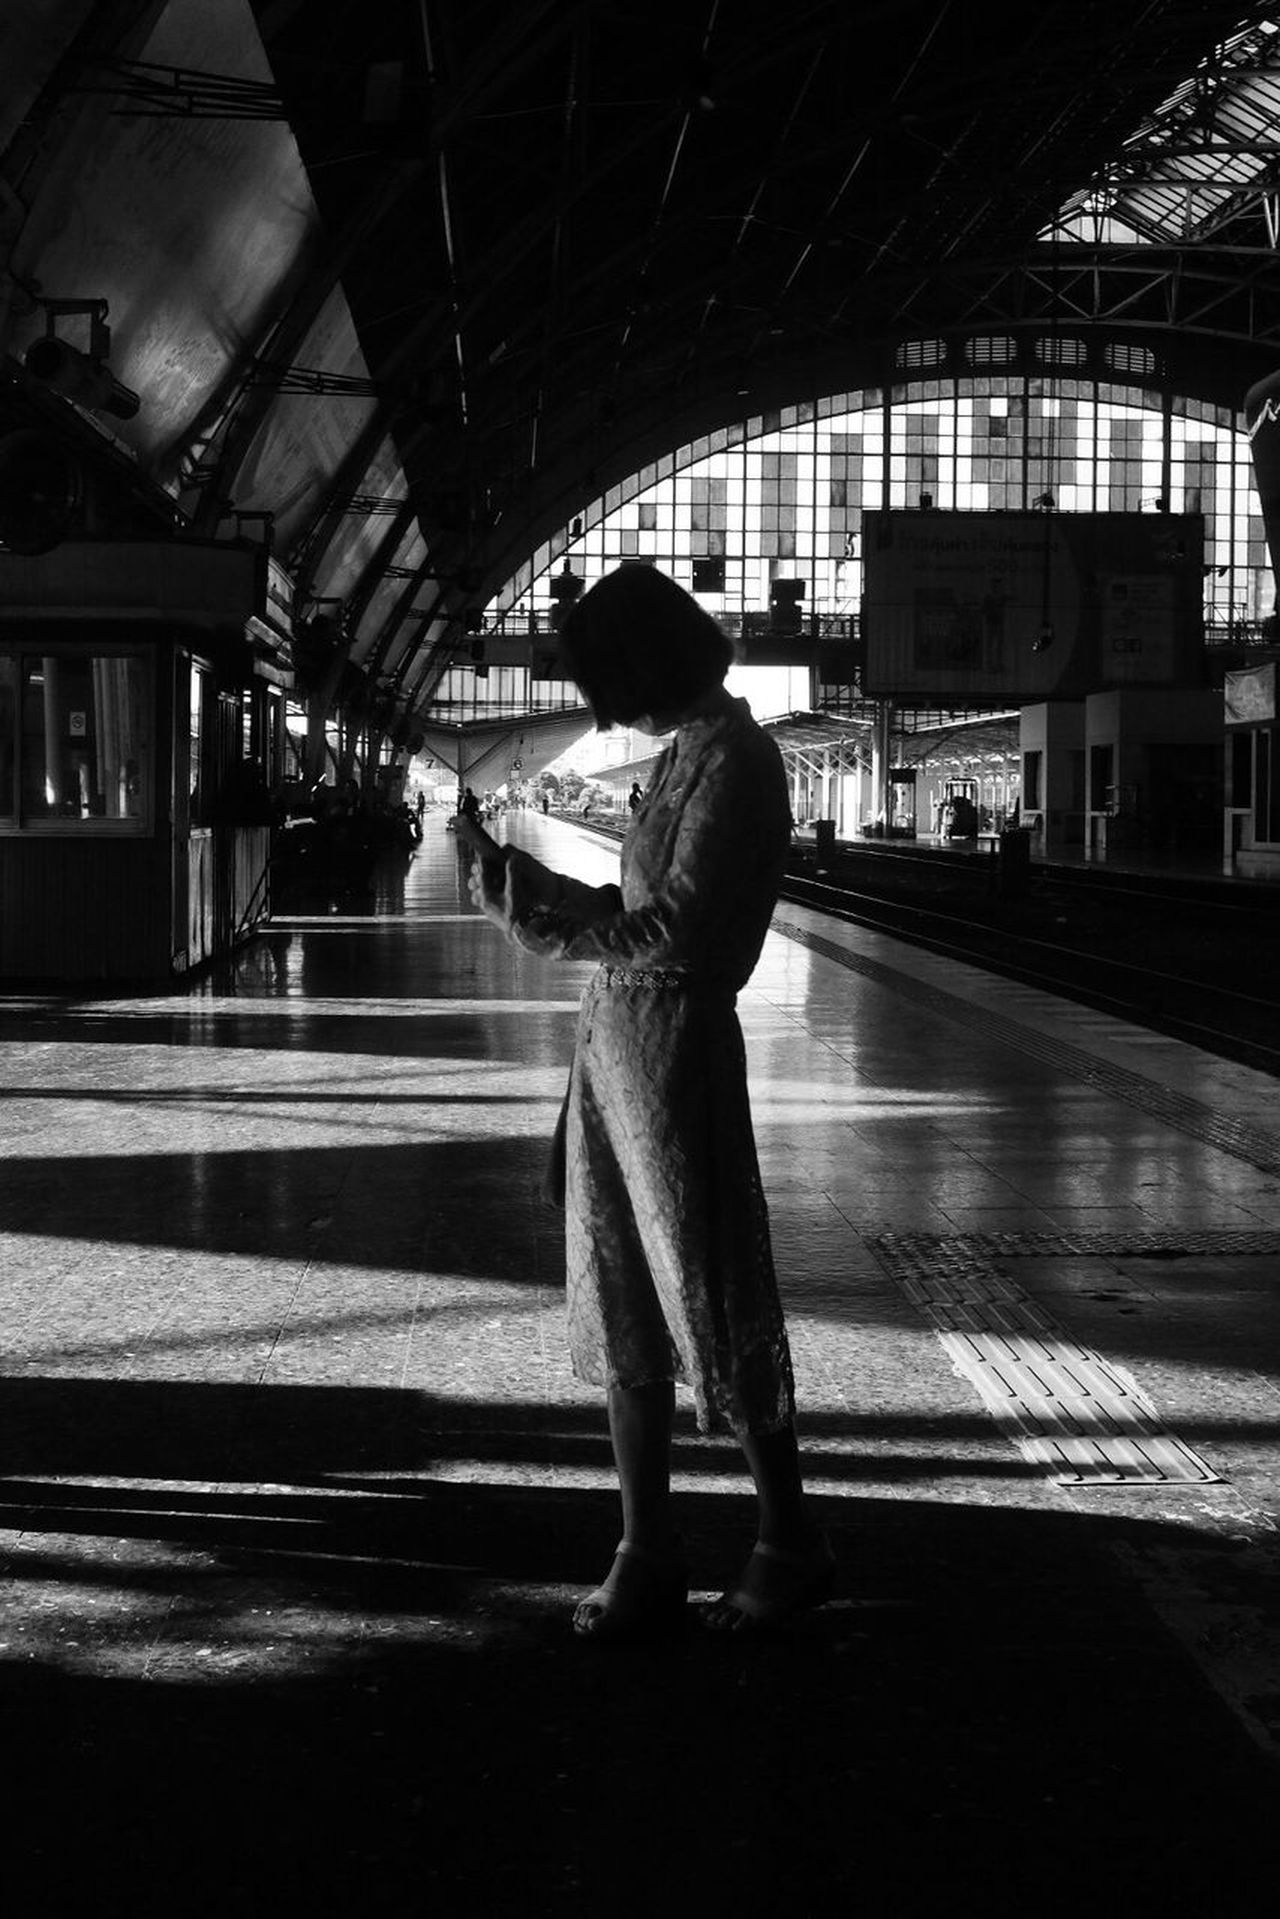 One Person Railroad Station Platform Railroad Station Monochrome Blackandwhite Street Photography Black And White Bw_collection Bangkok